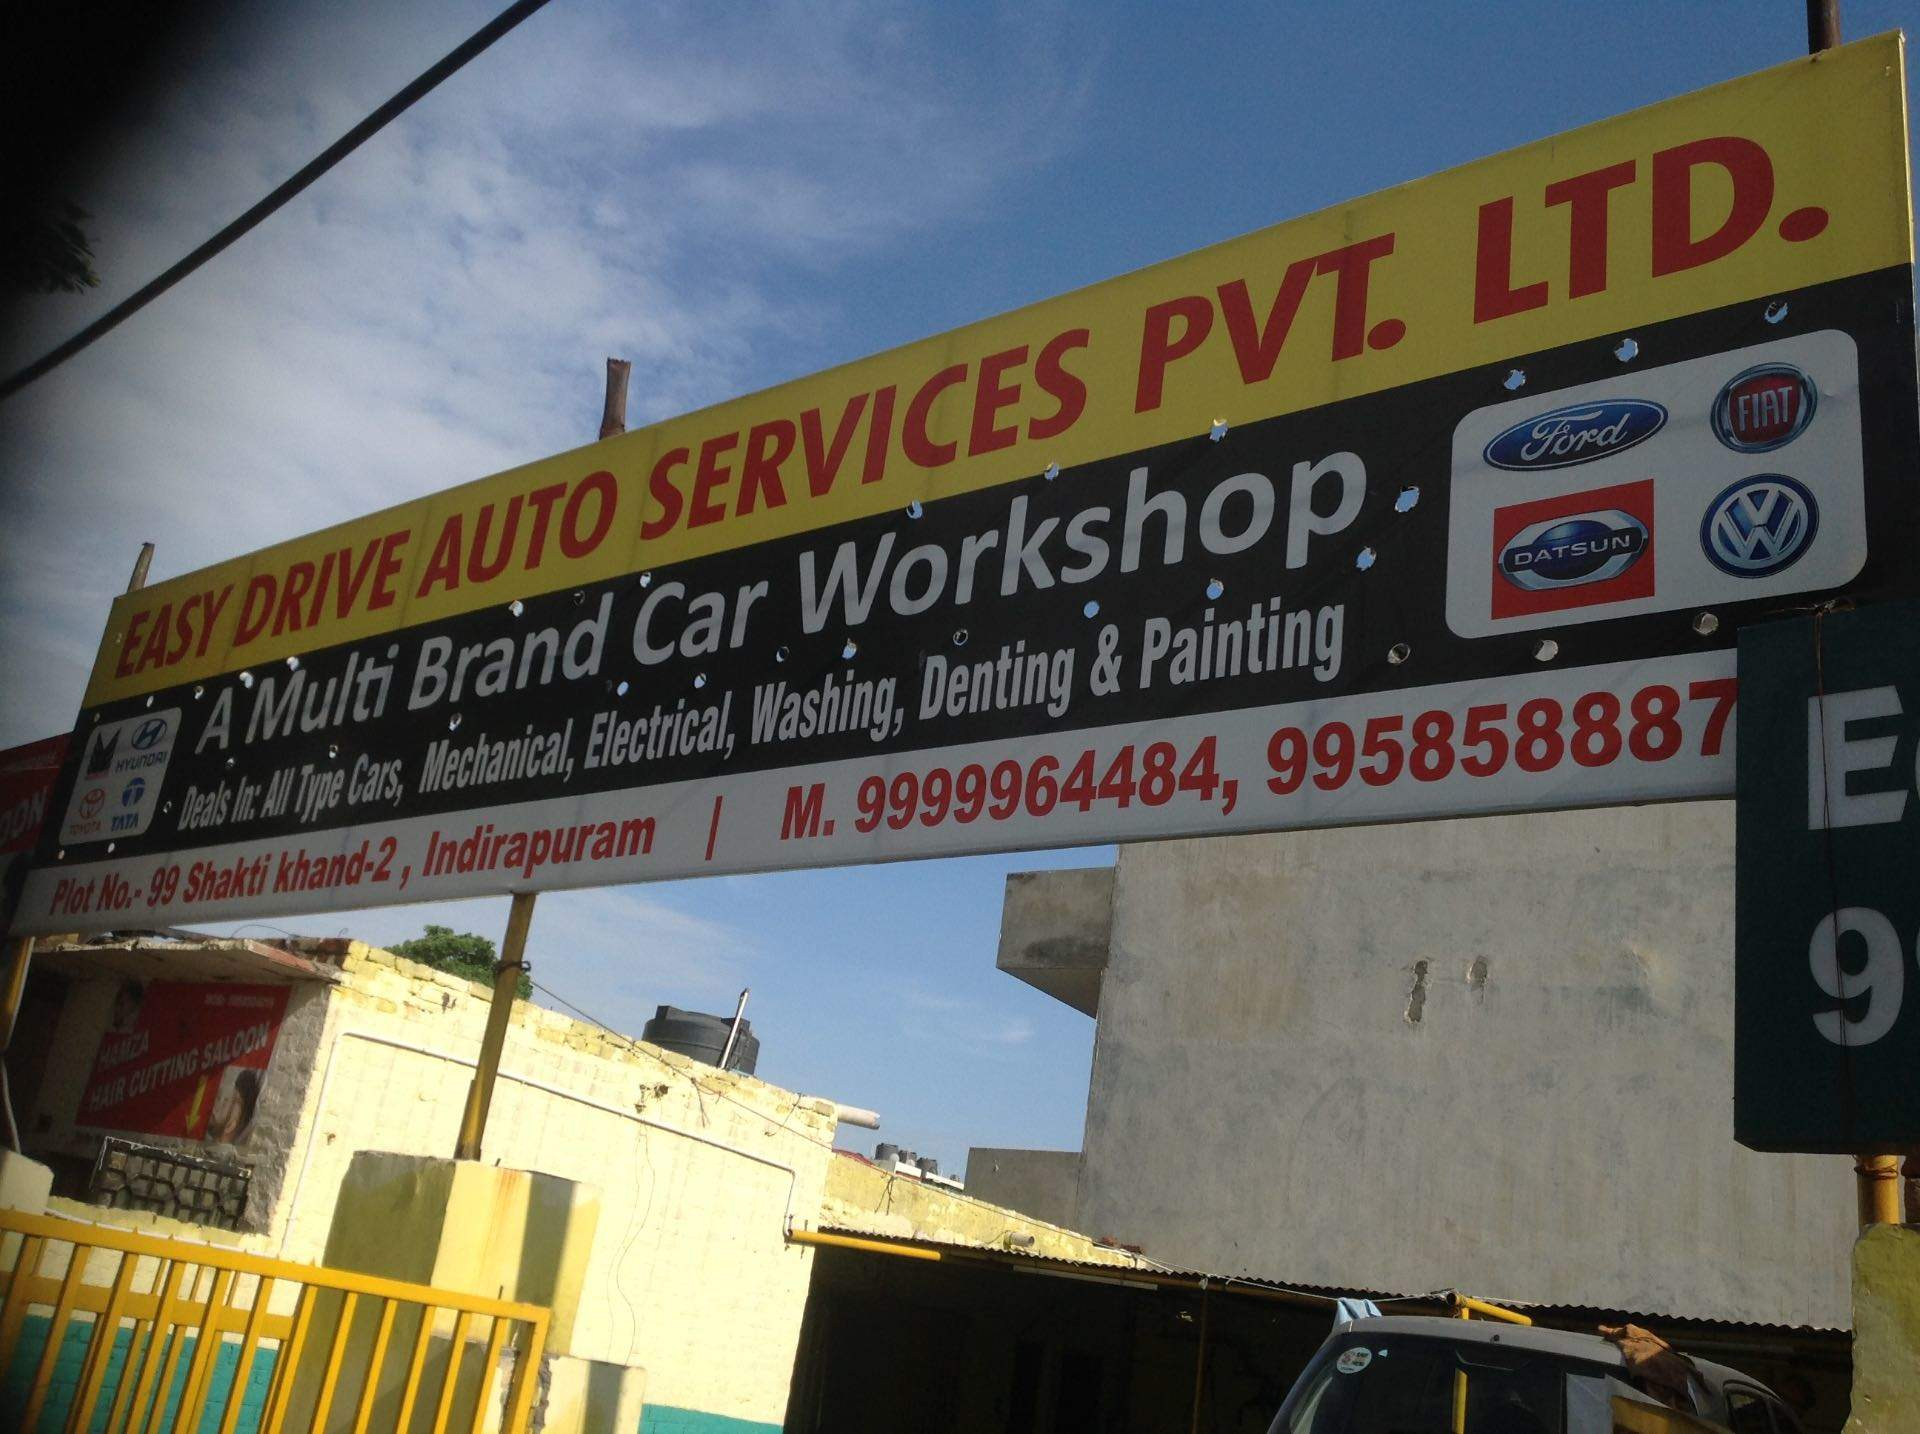 Top 100 Cng Conversion Kit Dealers in Delhi - Best Cng Gas